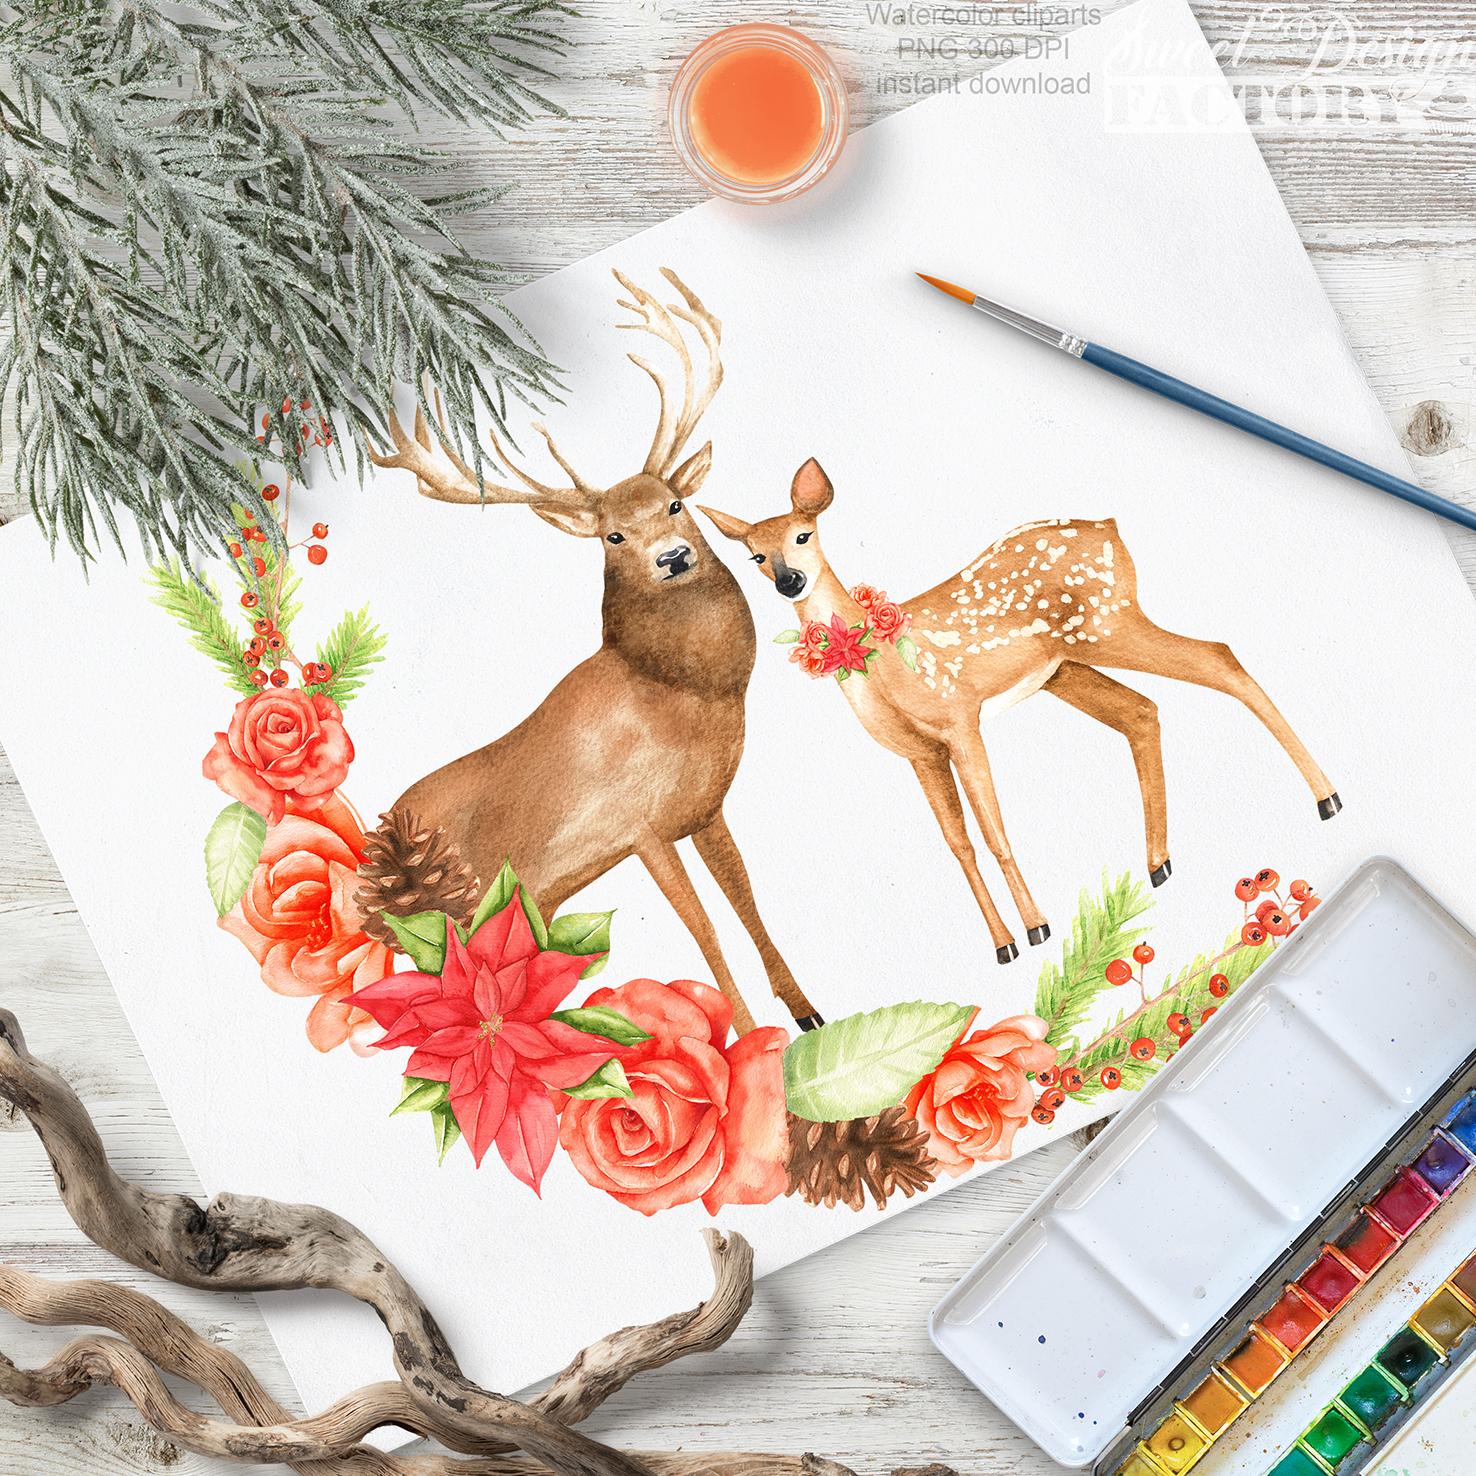 Deers and flowers cliparts example image 5